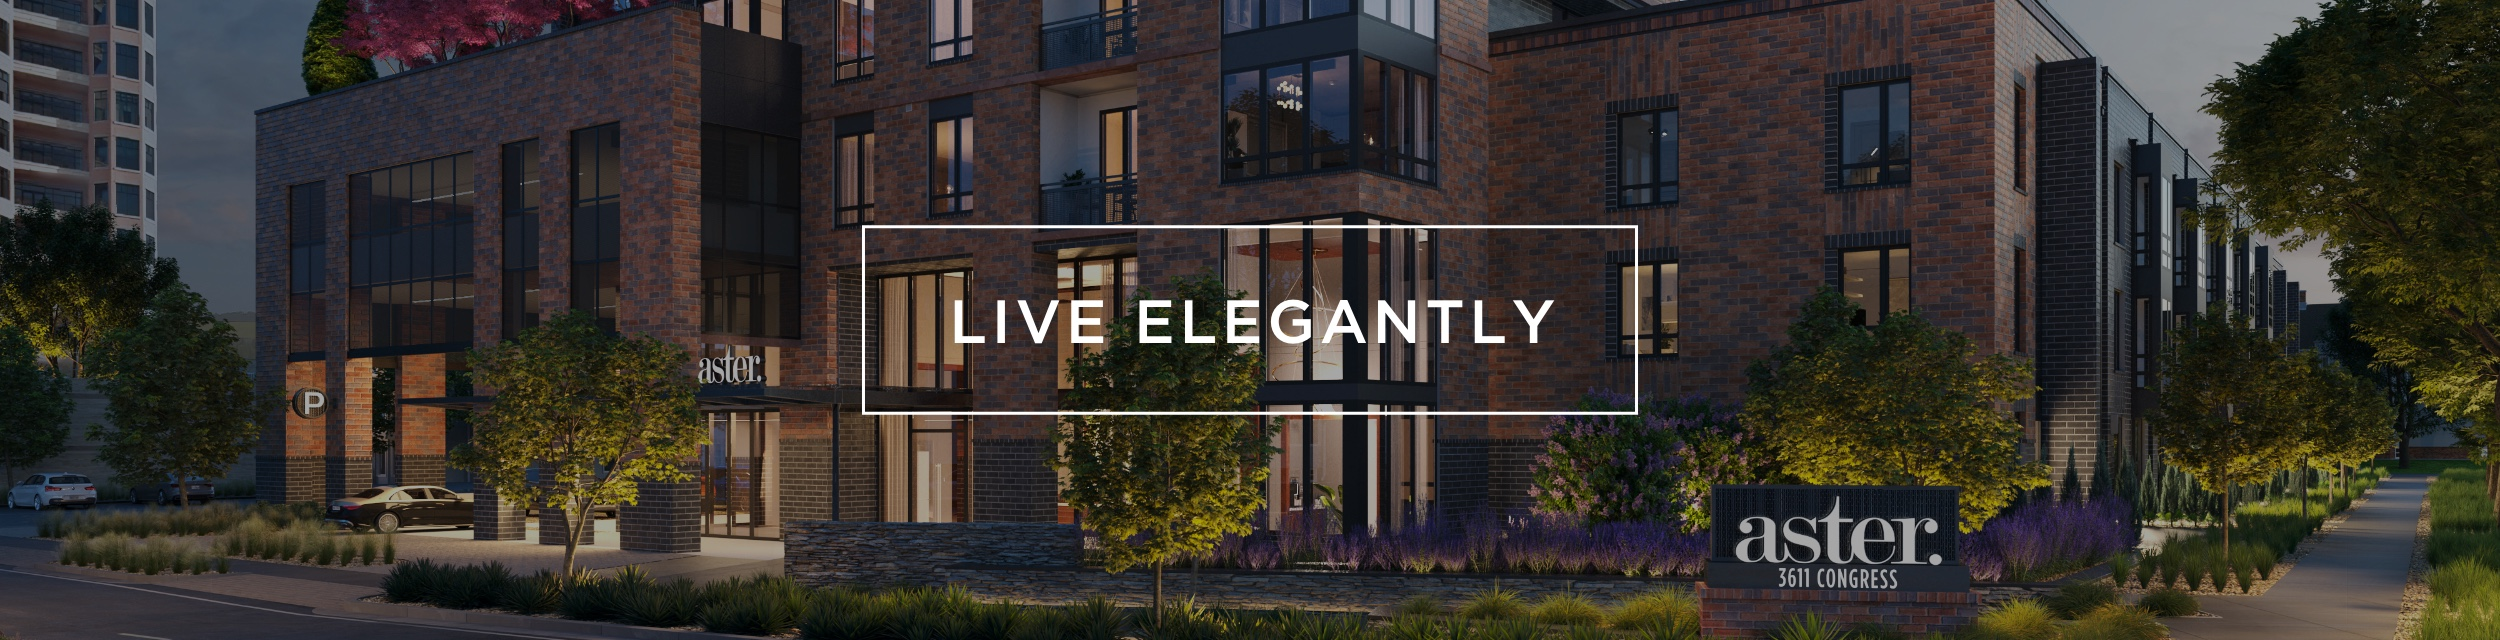 Aster exterior rendering with copy: Live Elegantly